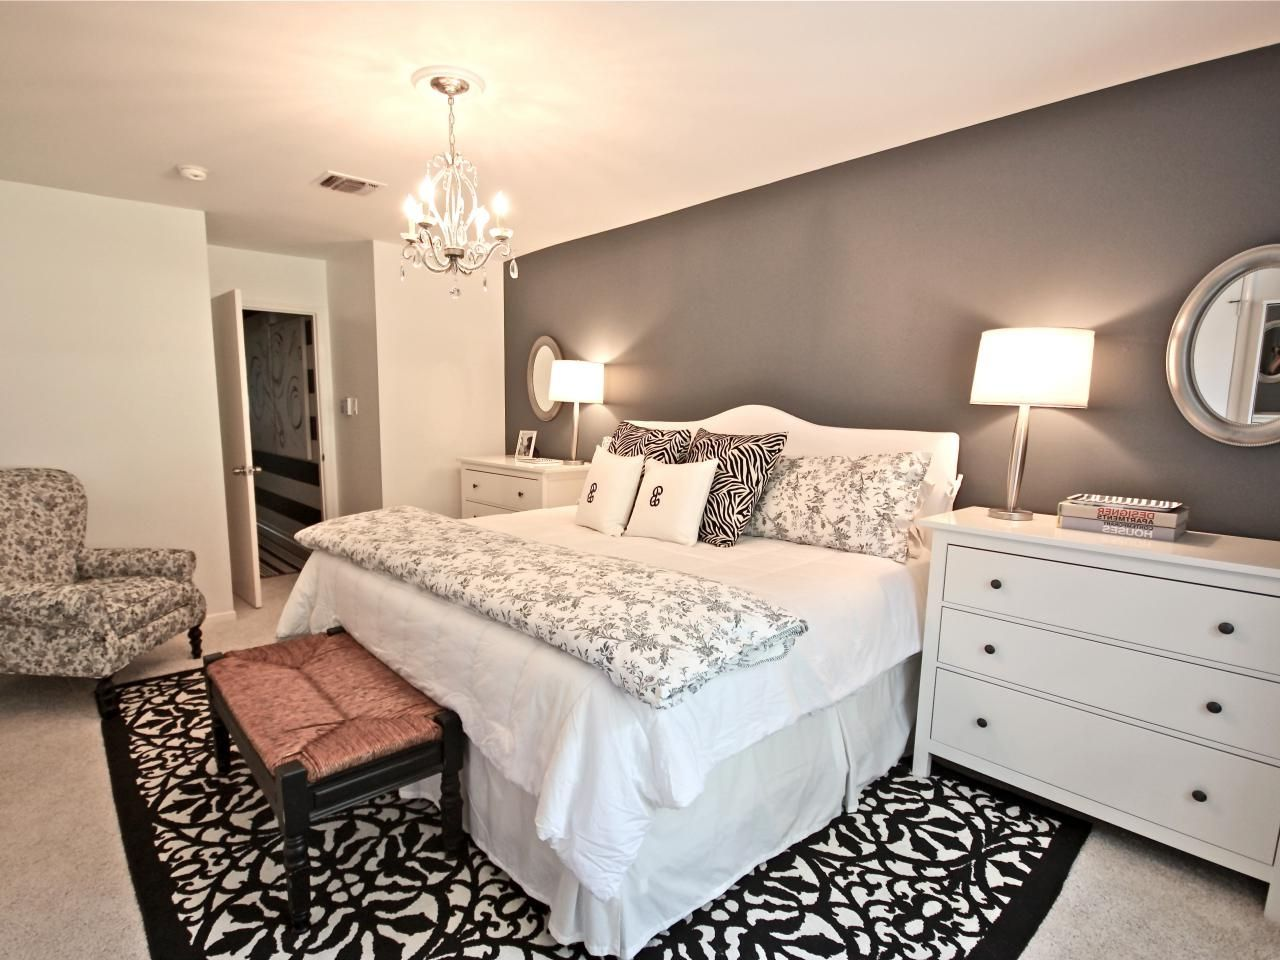 Bedroom Design Ideas Cheap Fair 15 Bedroom Decorating Ideas On A Budget Home D Home Design  Wall Review